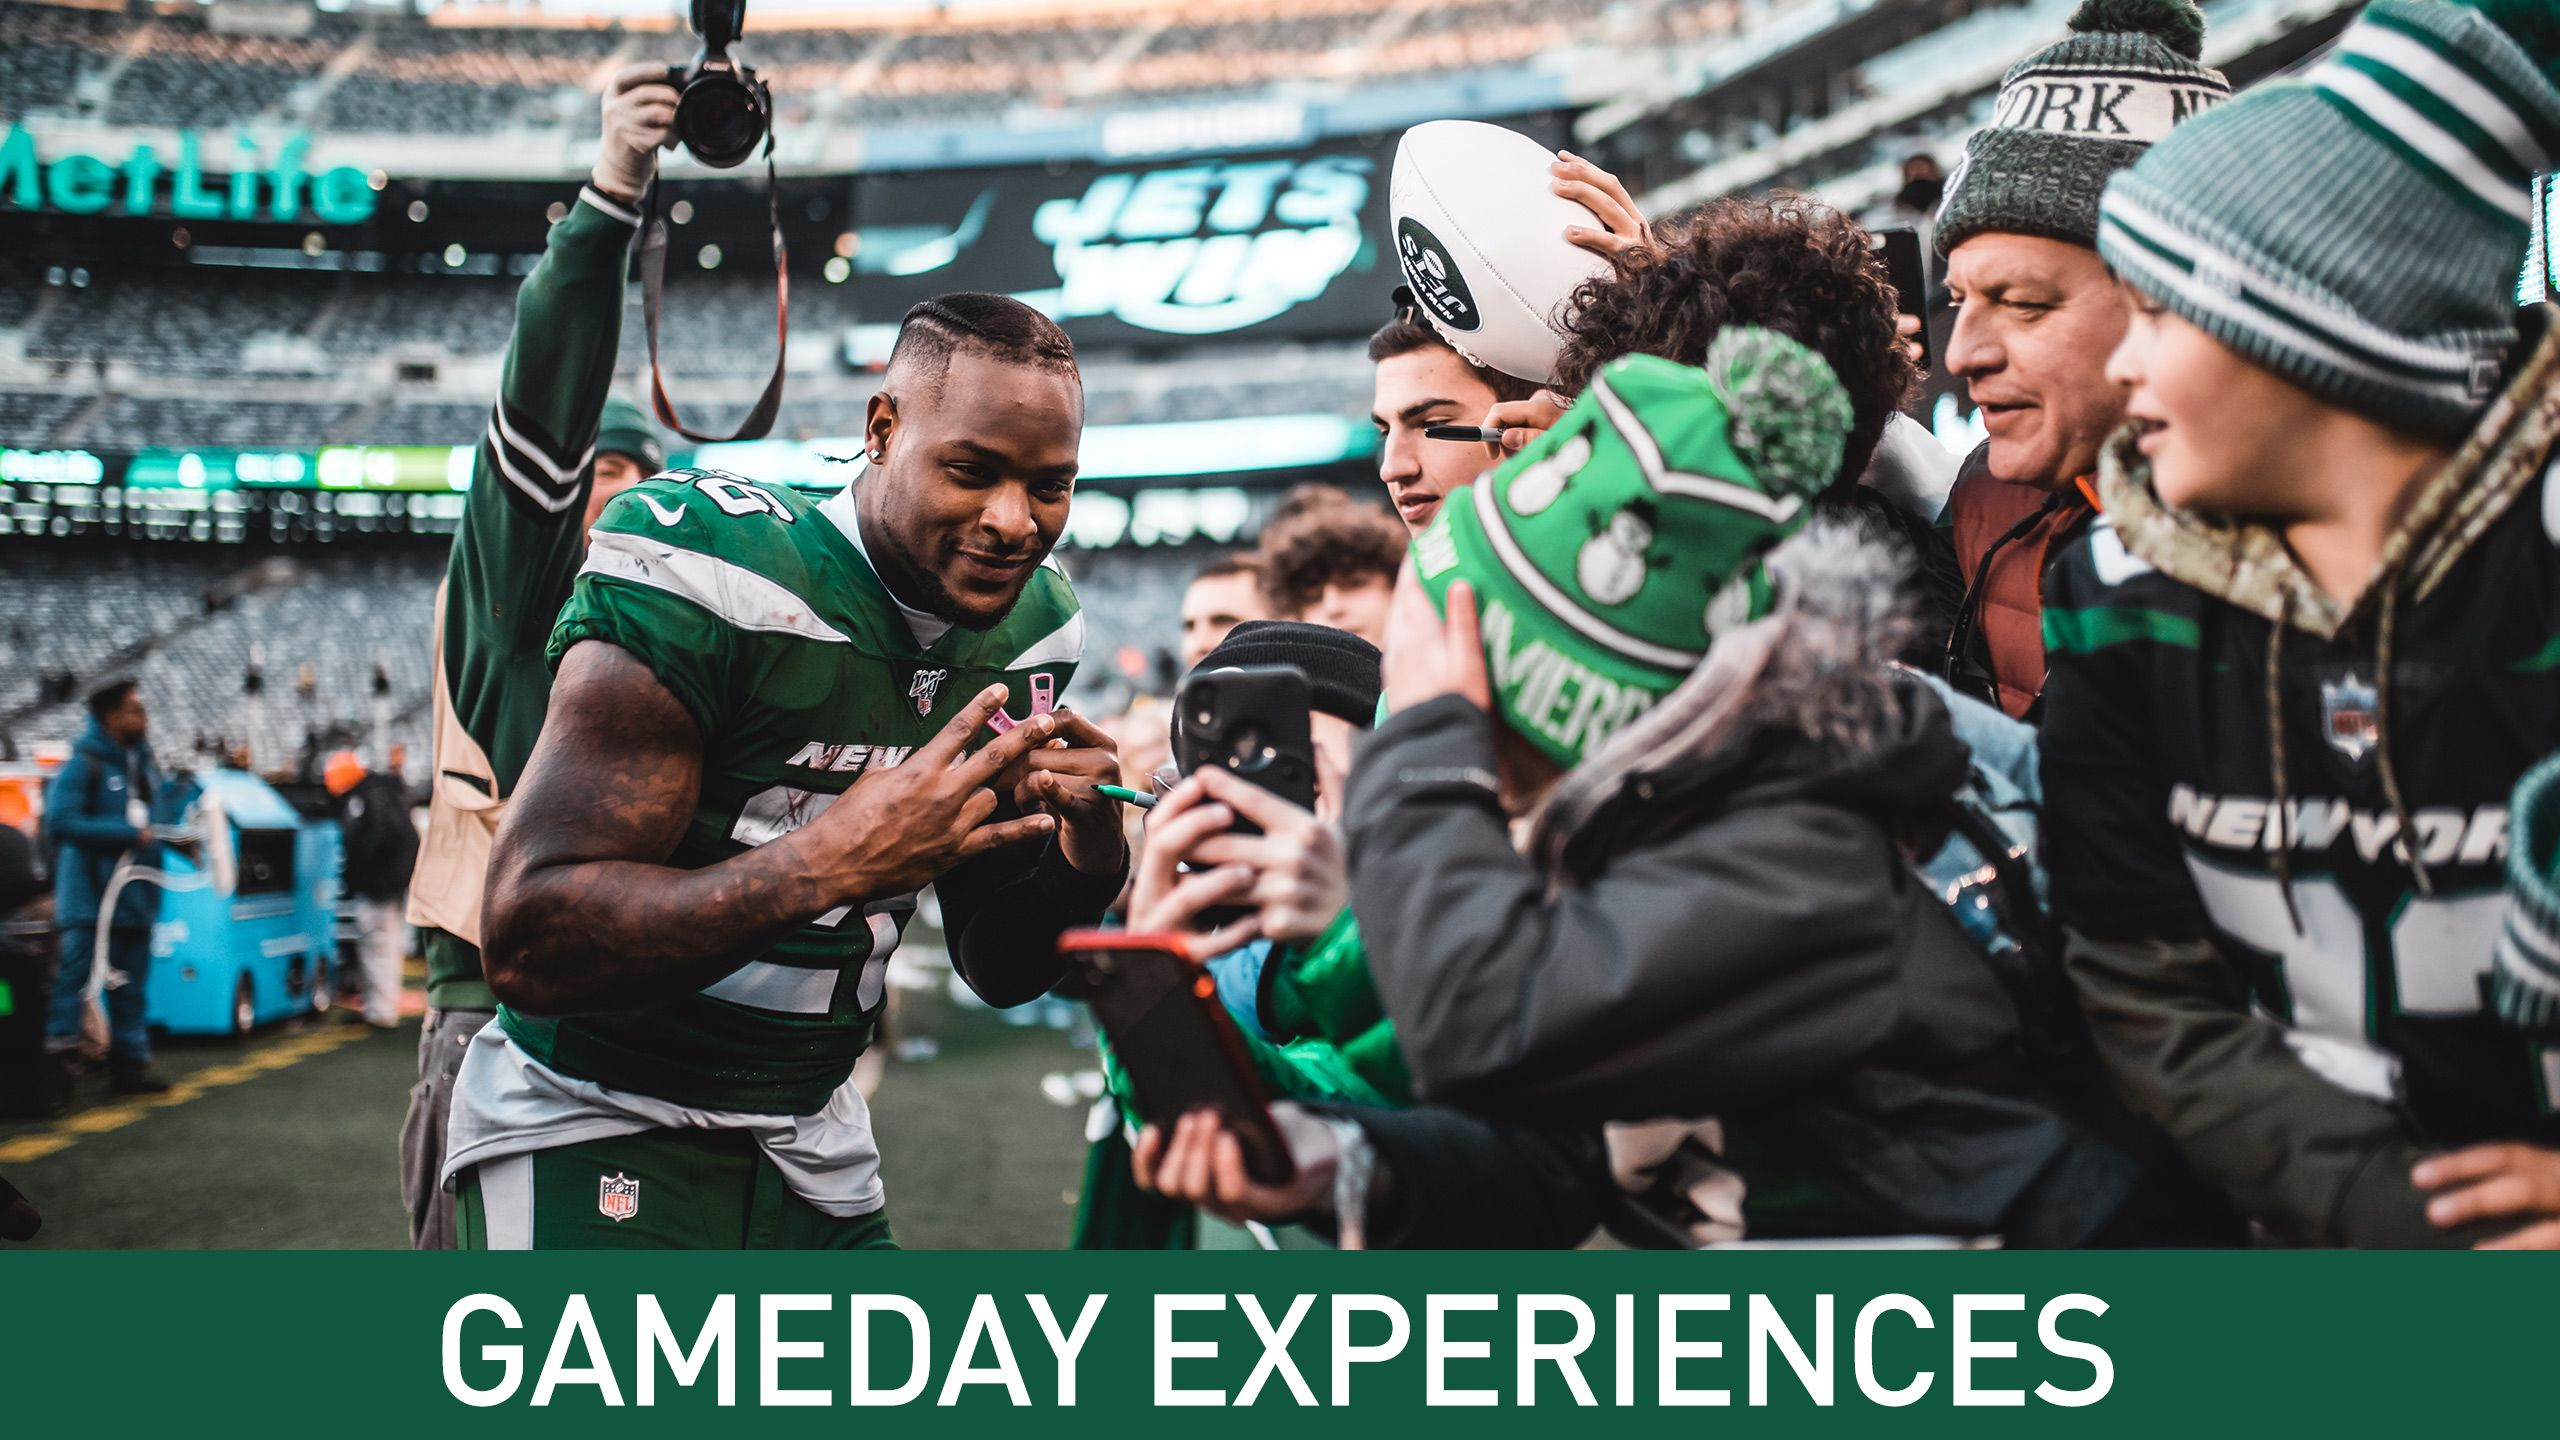 Benefits-gamedayexperiences